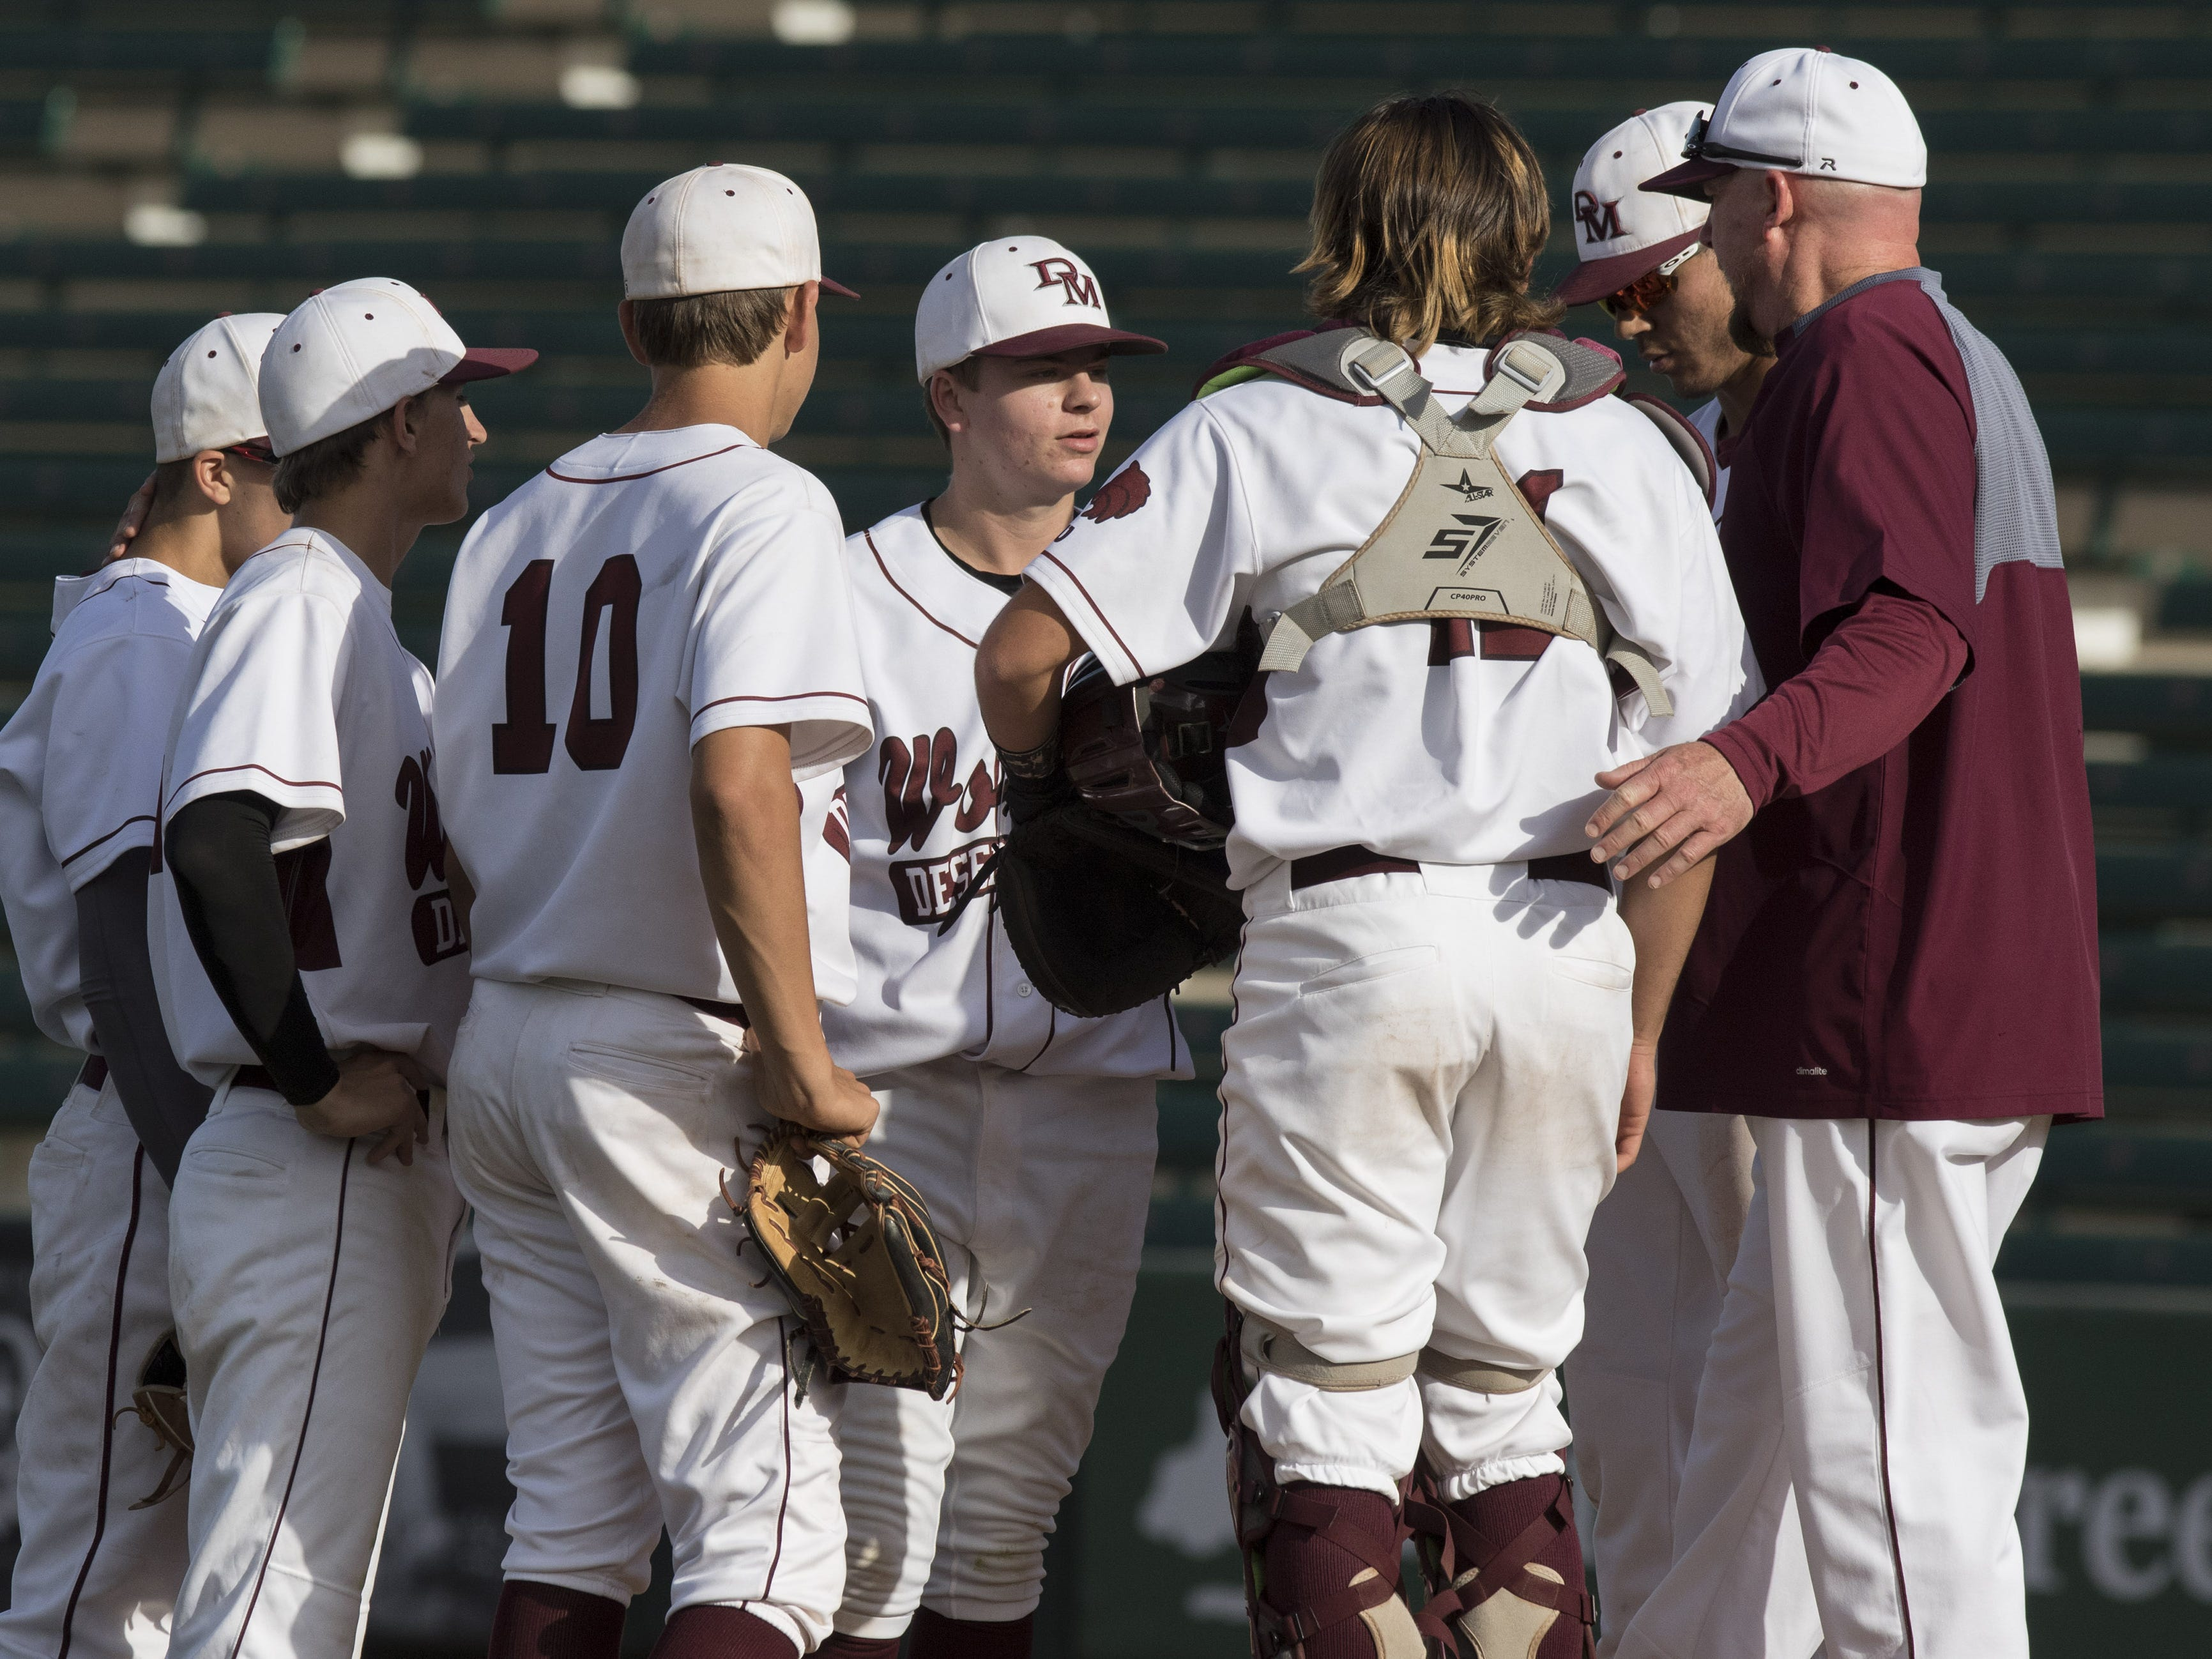 Desert Mountain coach Erik KehoeÊ (far right) talks to his team as they play Sunrise Mountain during the 5A state baseball second round at Diablo Stadium in Tempe, Arizona, April 29, 2019.